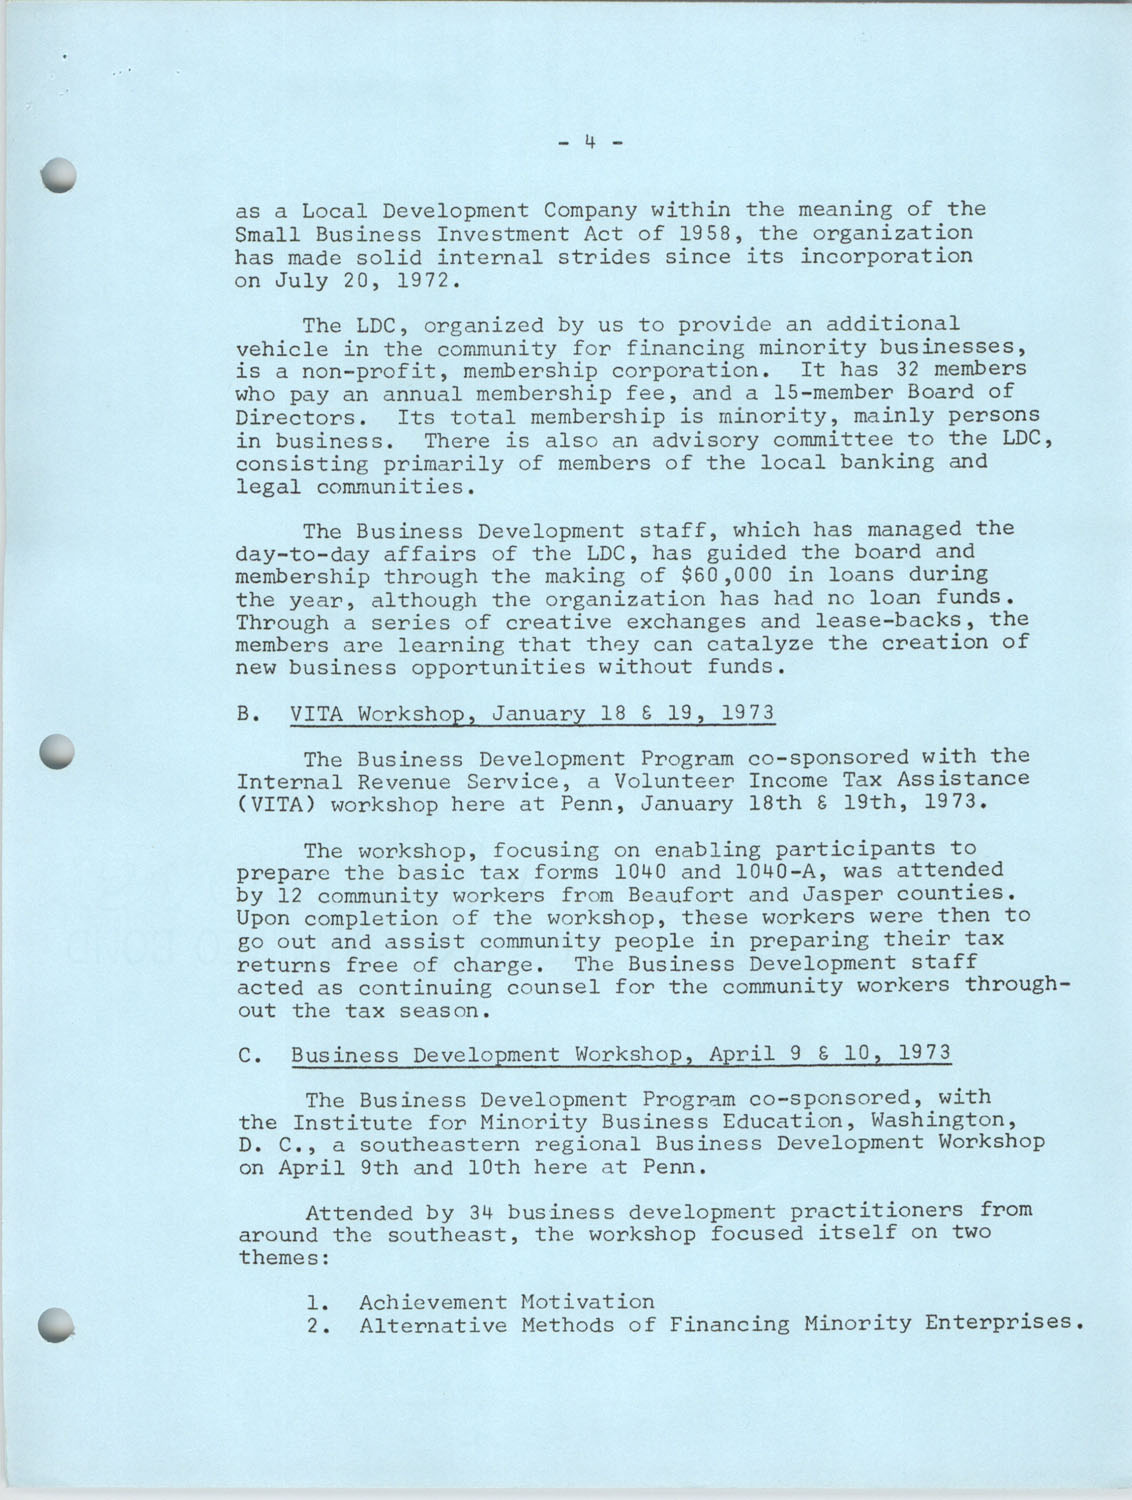 Annual Reports, Penn Community Services, 1973, Page 21